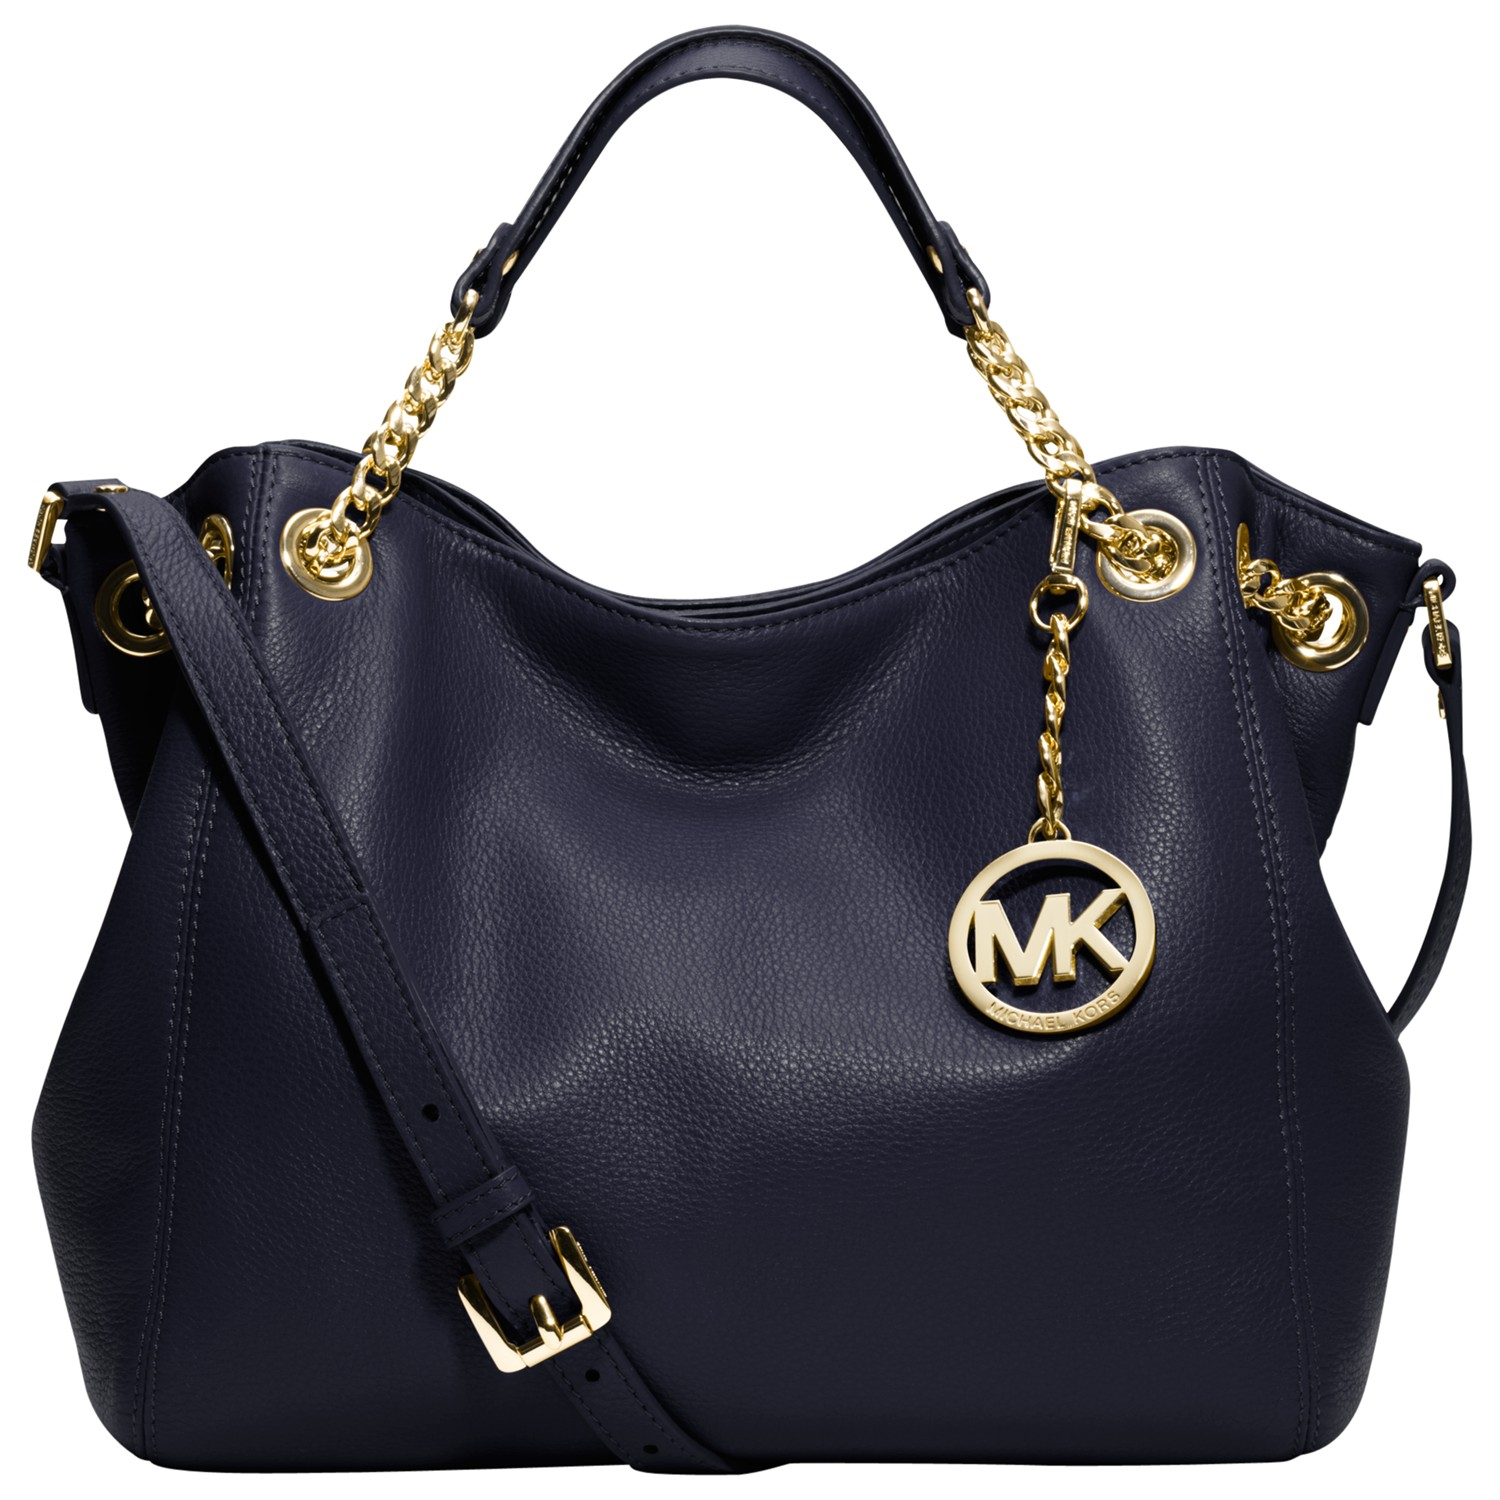 89b1a7ad1f73 MICHAEL Michael Kors Jet Set Chain Medium Tote Handbag in Blue - Lyst